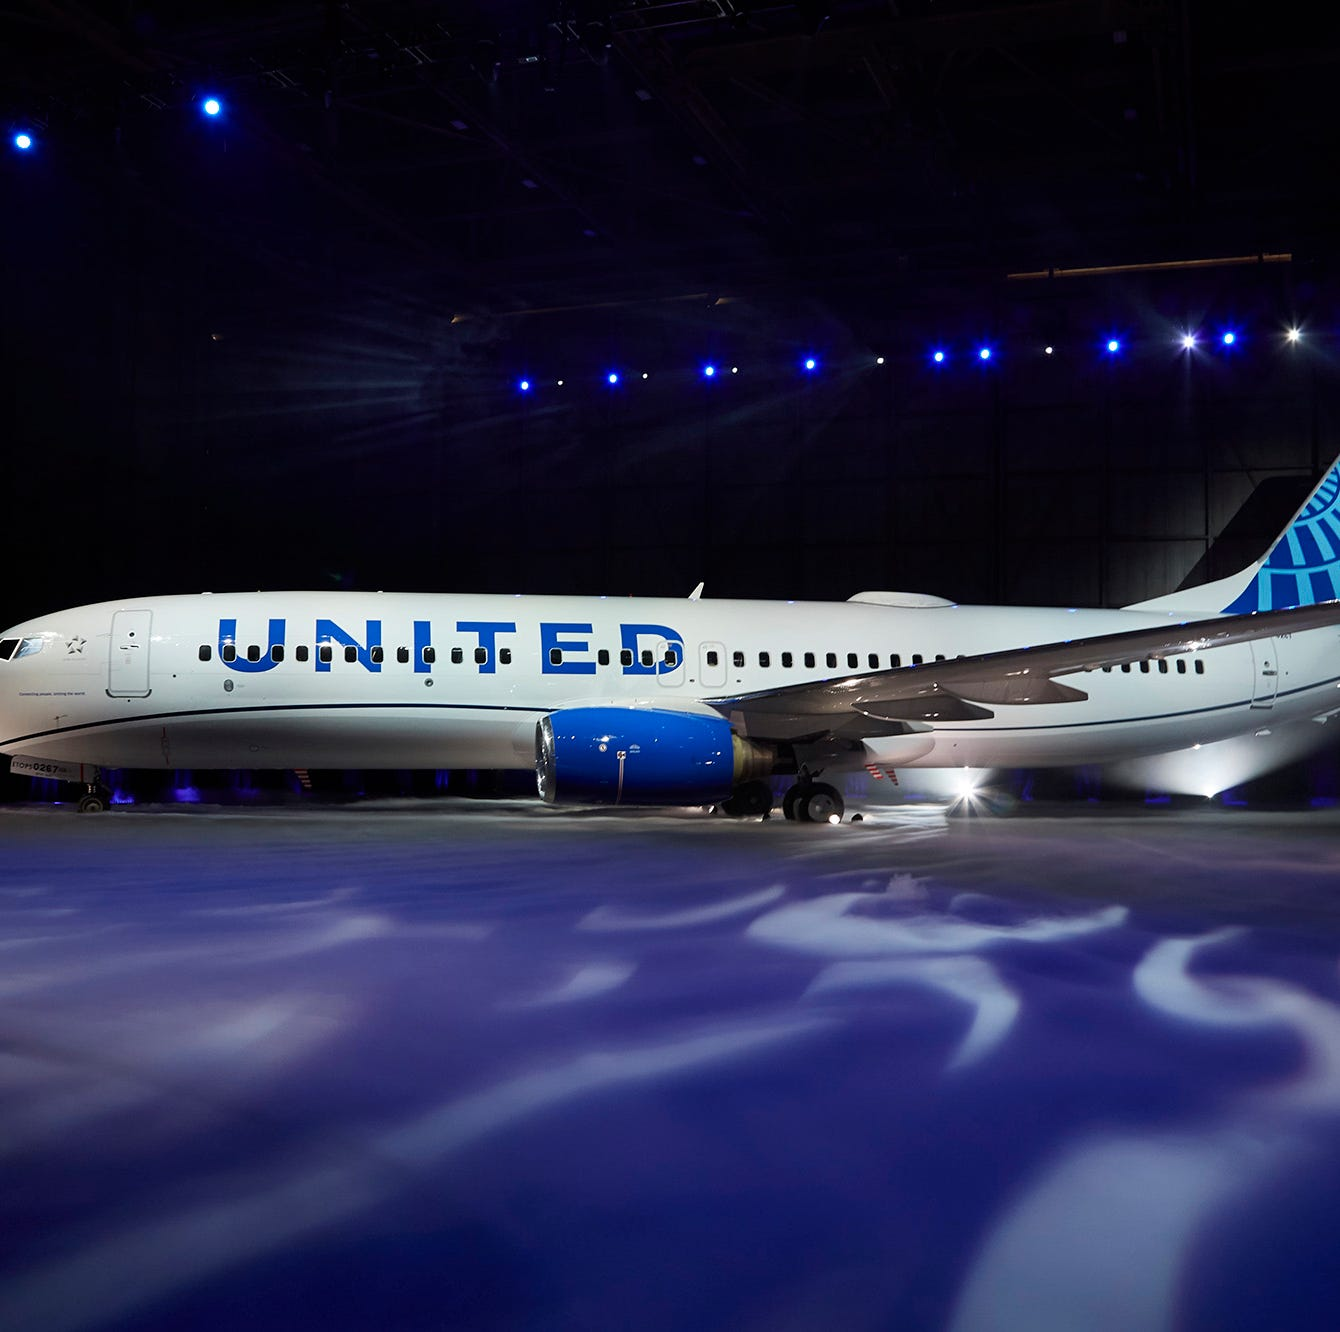 United Airlines unveiled its new livery on a 737-800 at Chicago O'Hare airport on April 24th, 2019.